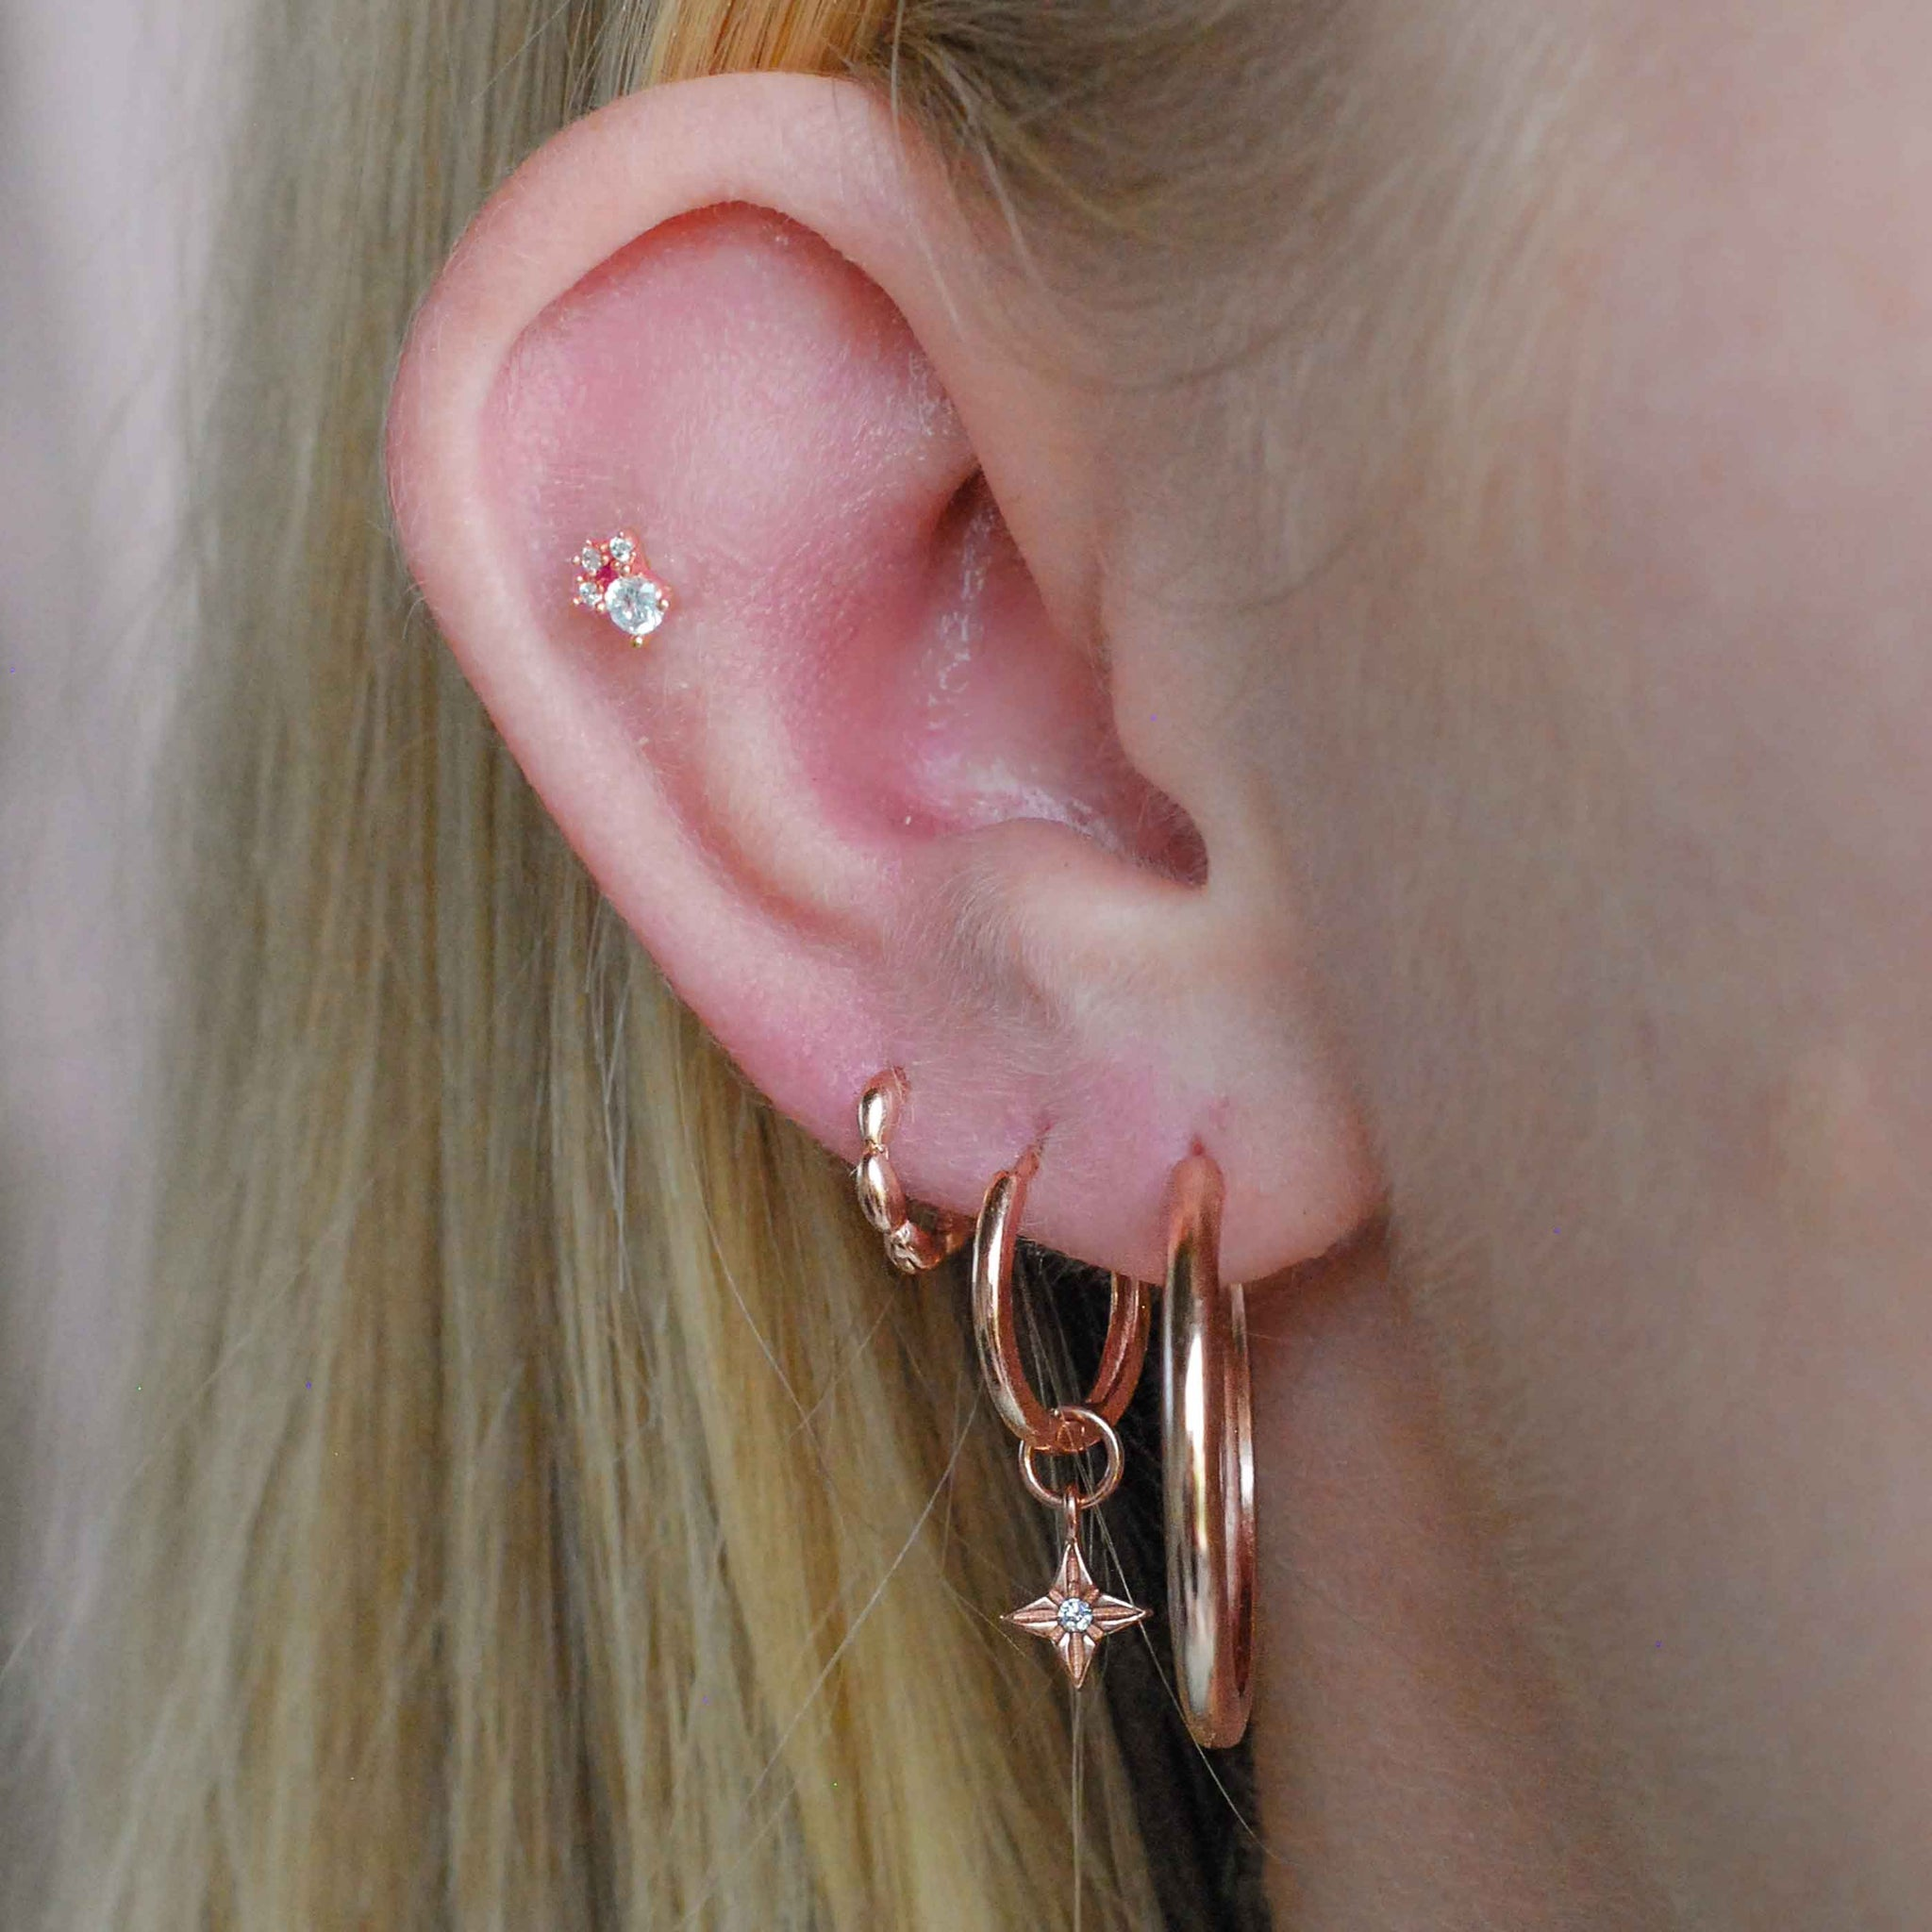 Crystal & Triple Stone Barbell in Rose Gold worn in outer conch piercing